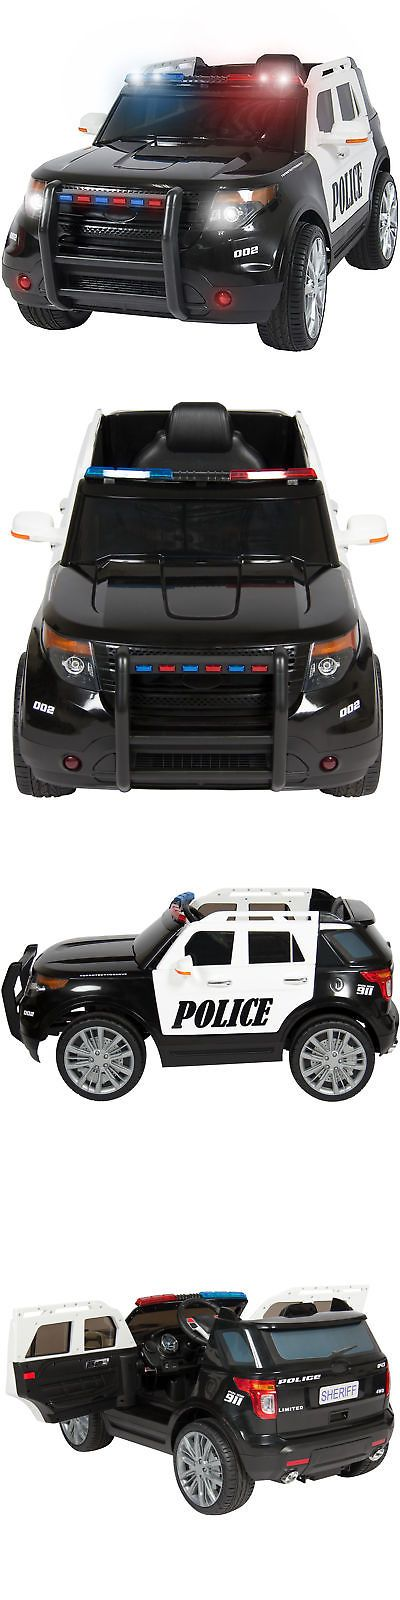 Ride On Toys and Accessories 145944: 12V Ride On Car Police Car W Remote Control, 2 Speeds, Led Lights -> BUY IT NOW ONLY: $234.99 on eBay!